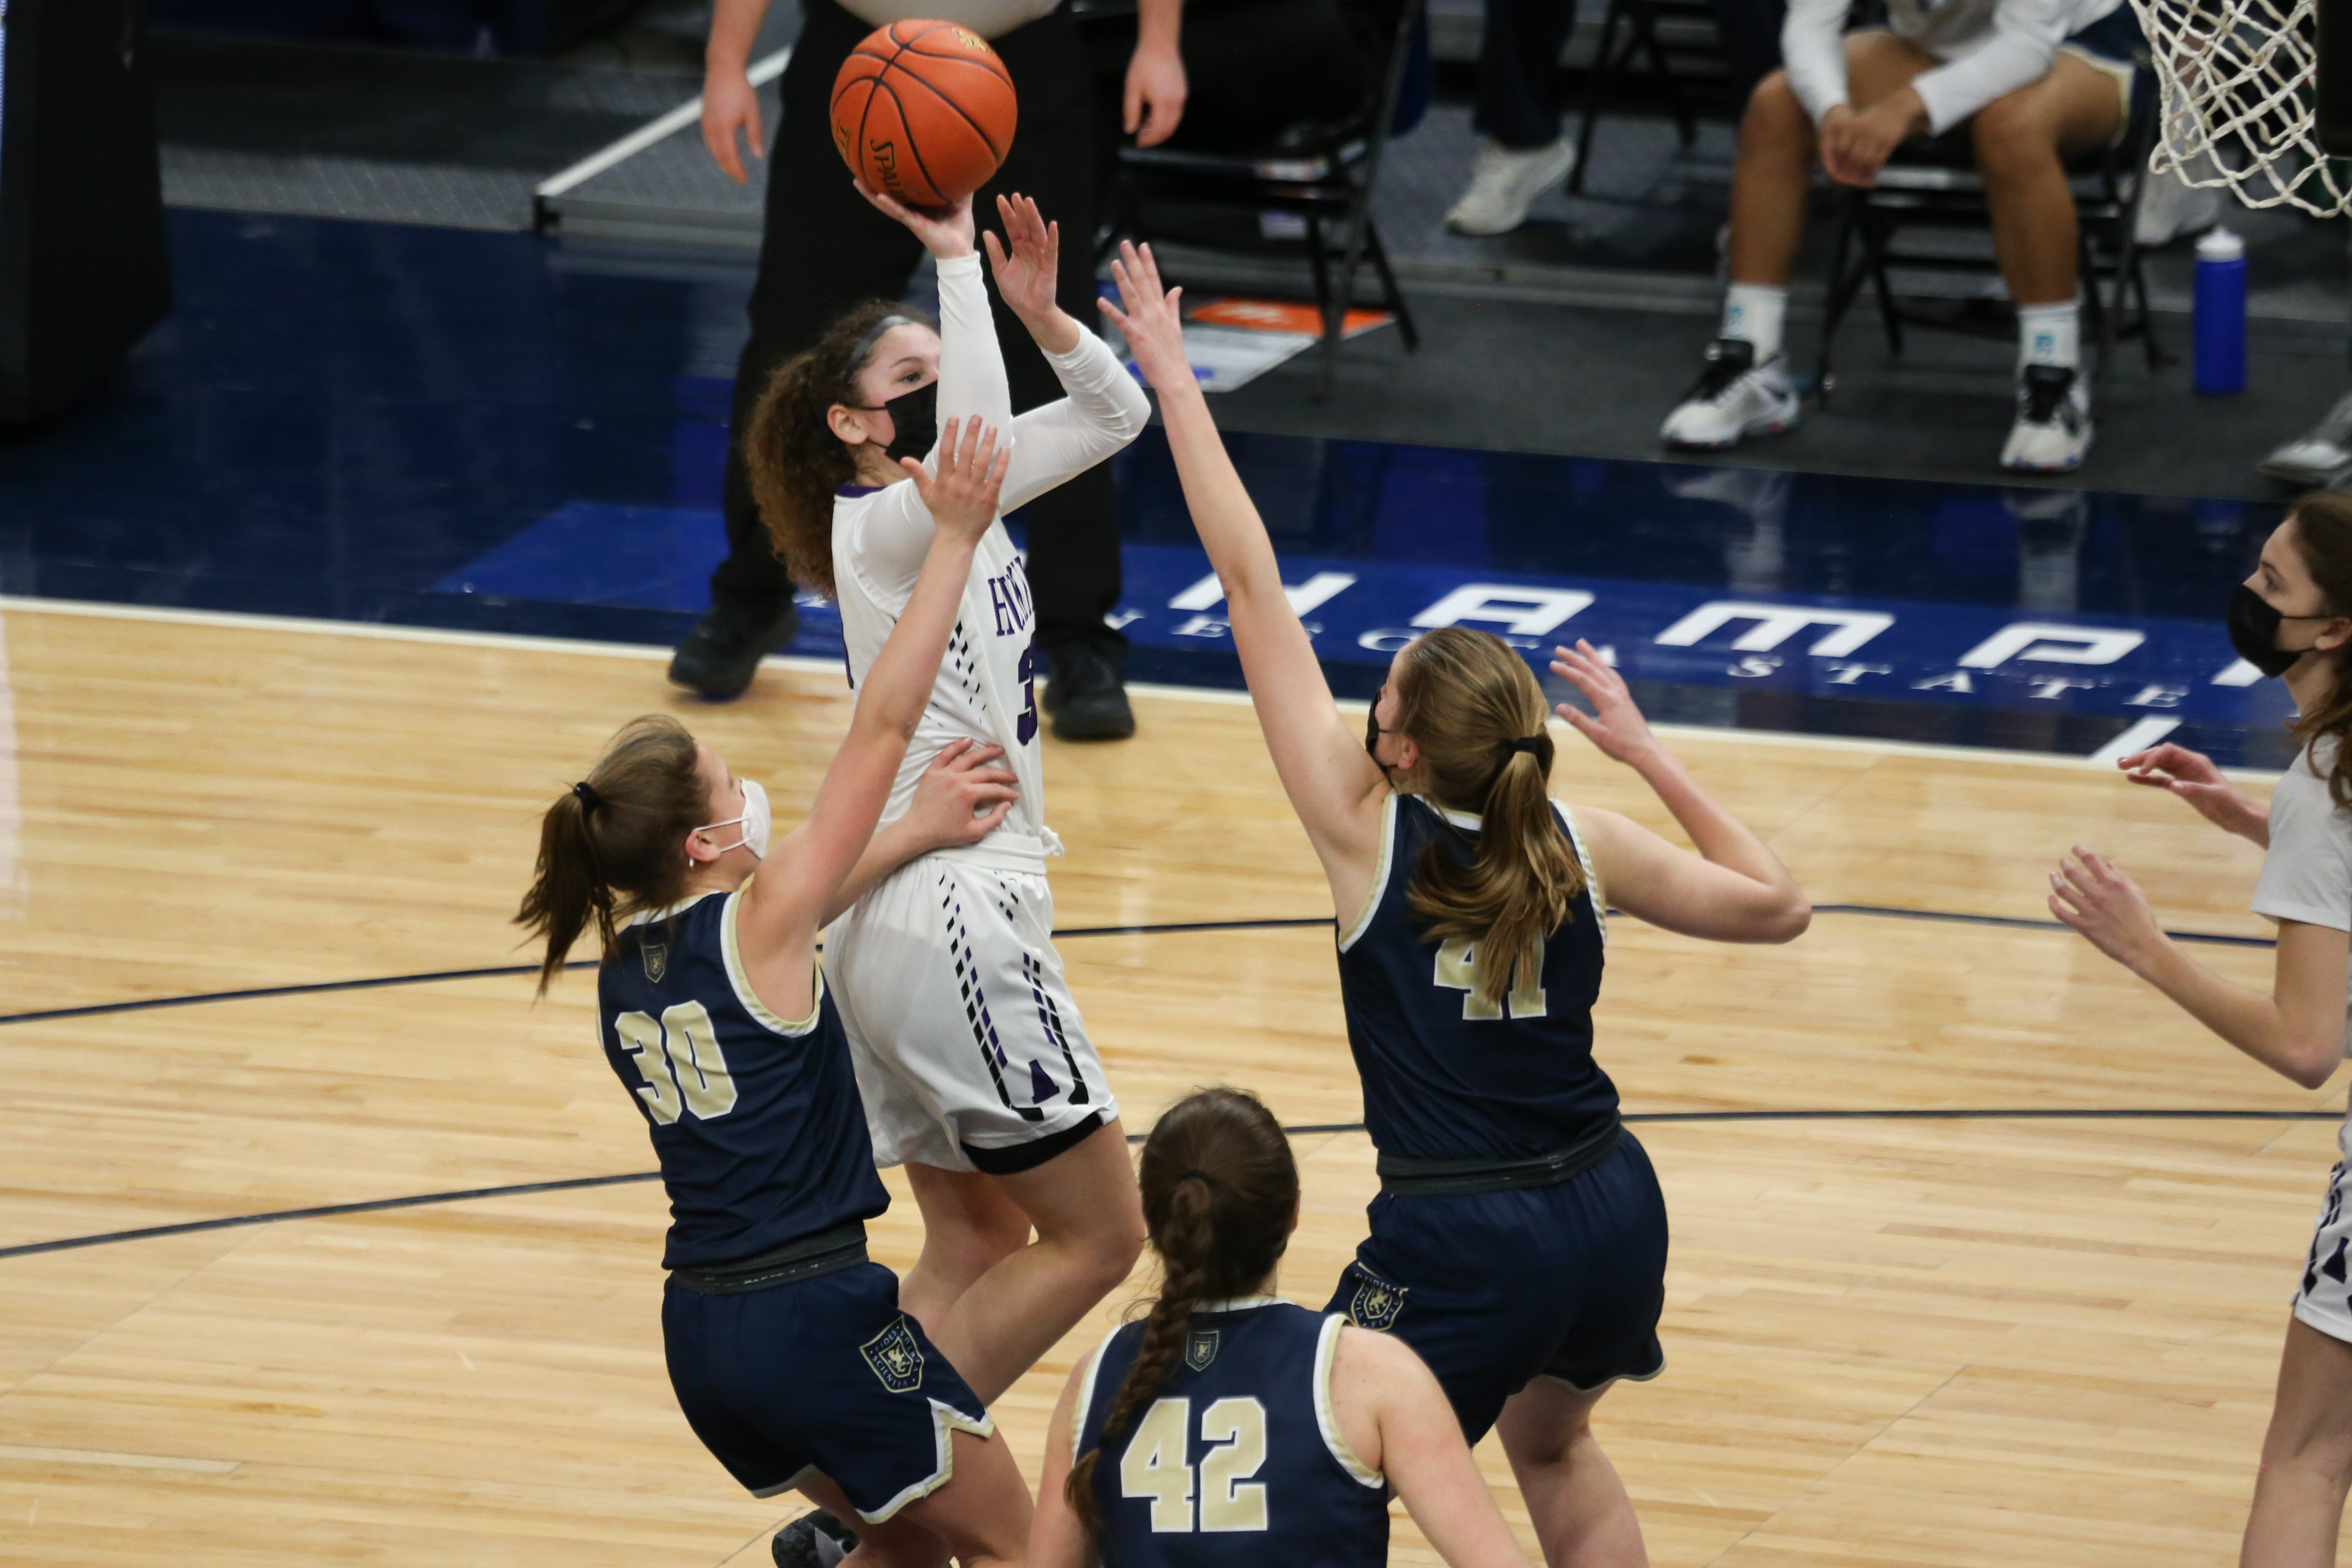 Albany's Joran Carlson (33) makes a short jump shot over two Providence Academy defenders during the first half of Friday's Class 2A championship game at Target Center. Photo by Jeff Lawler, SportsEngine